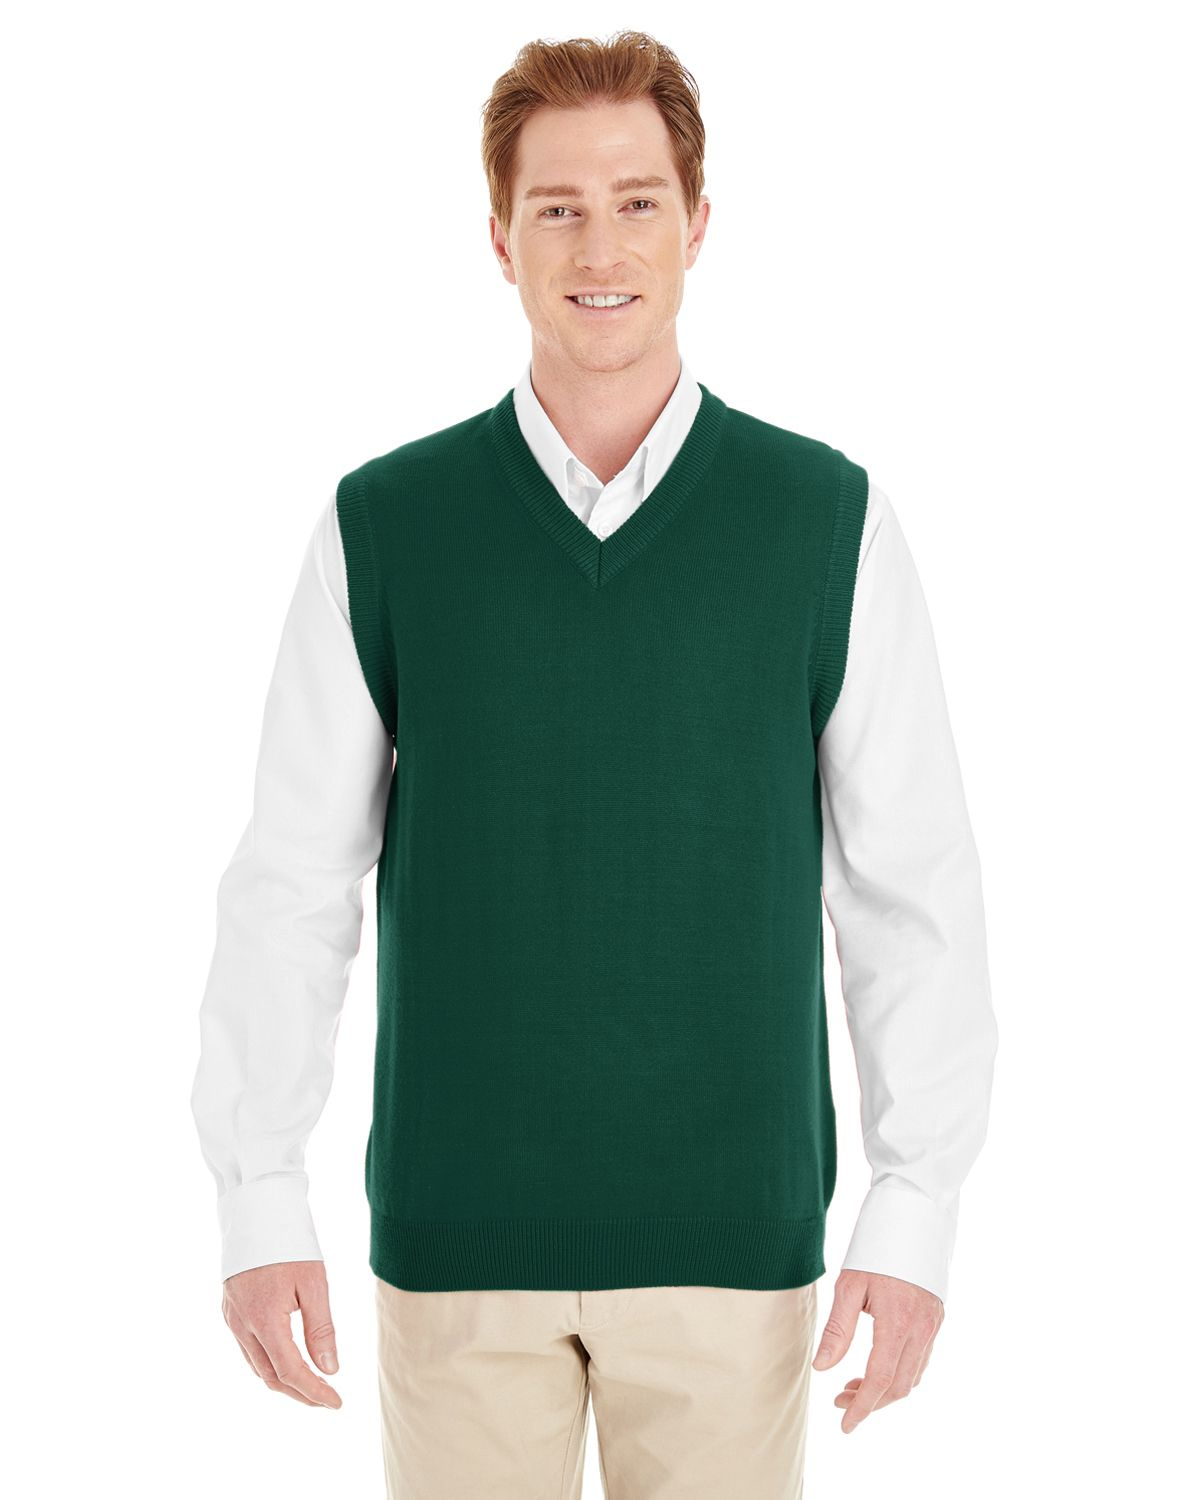 Harriton M415 - Men's Pilbloc™ V-Neck Sweater Vest #harriton ...